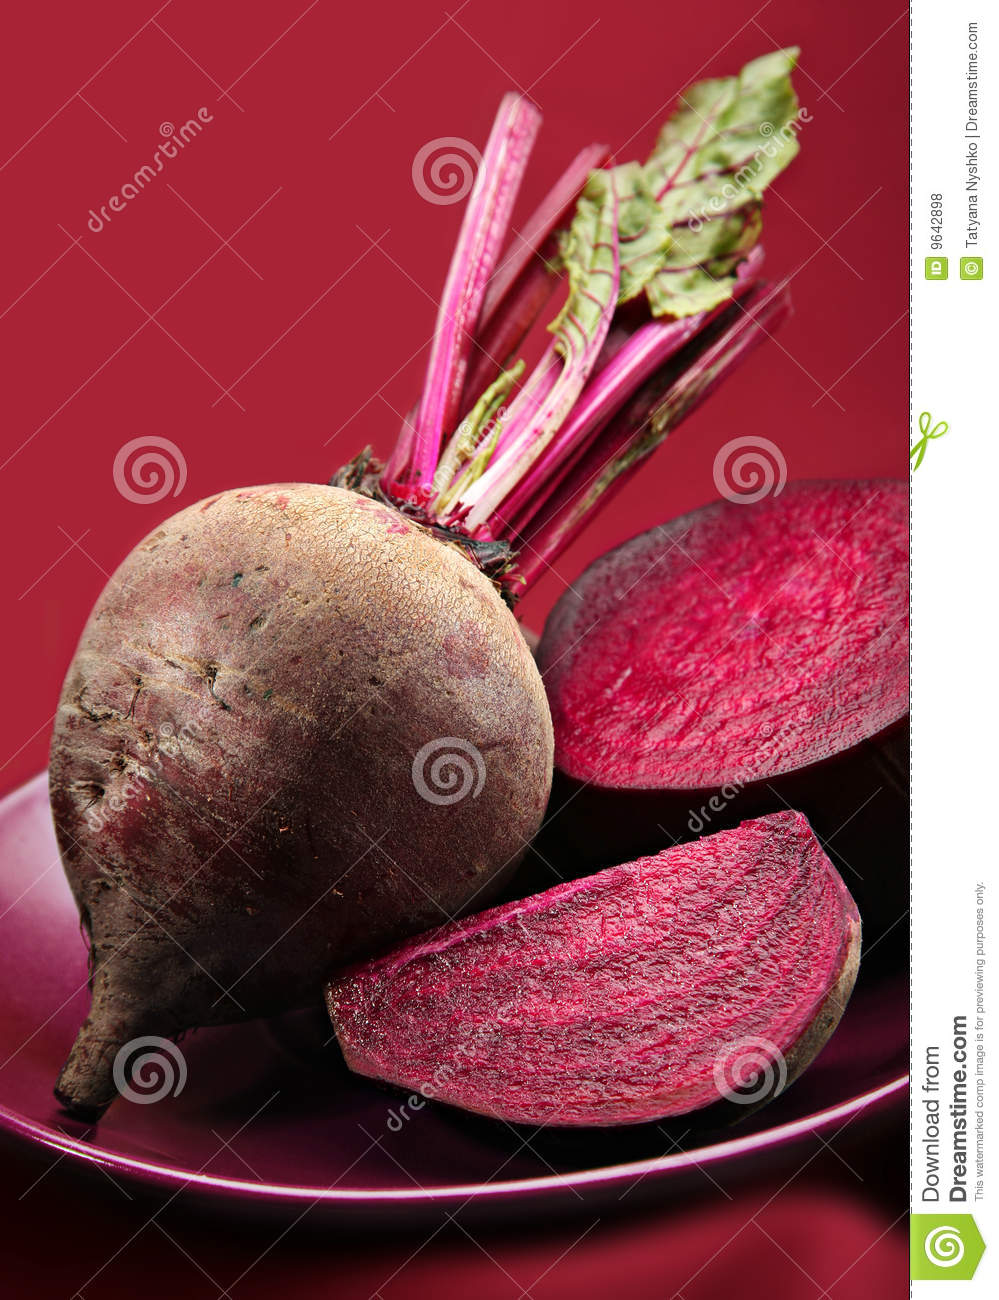 Beetroot detail